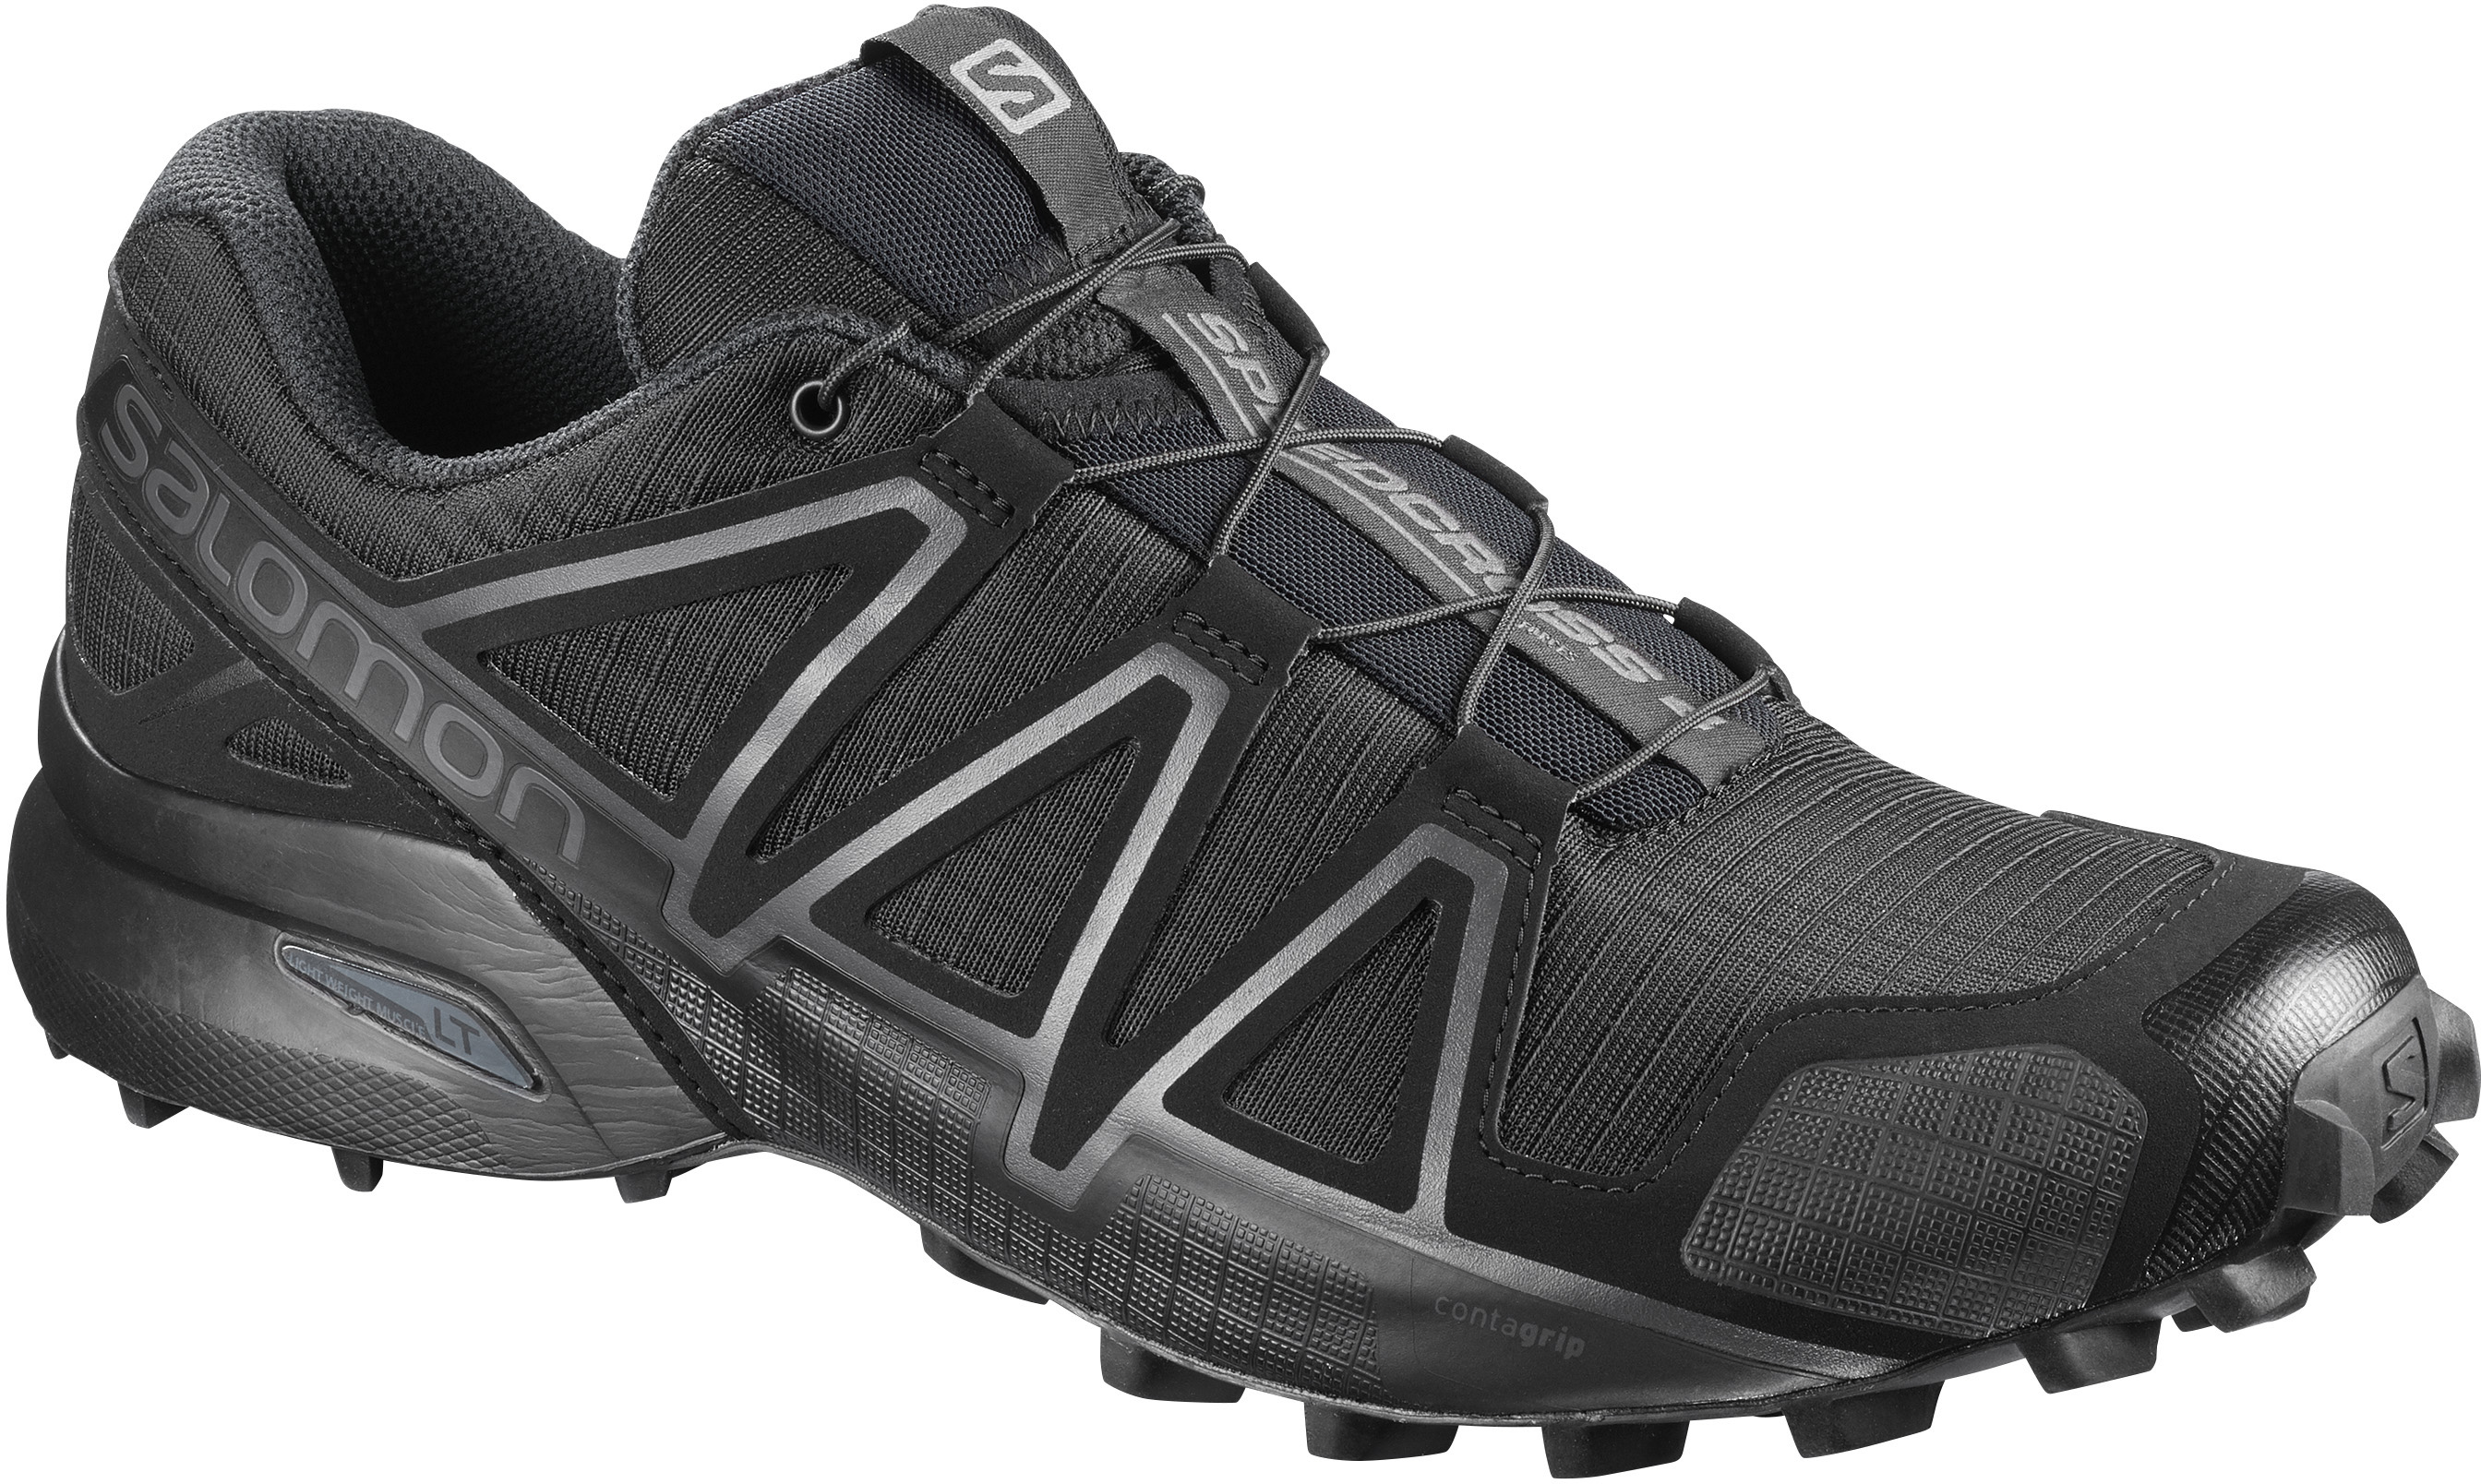 online store d7980 f1c07 Reviews   Ratings for Salomon Mens Speedcross 4 Wide Forces Trail Running  Shoe — 2 reviews — Page 1